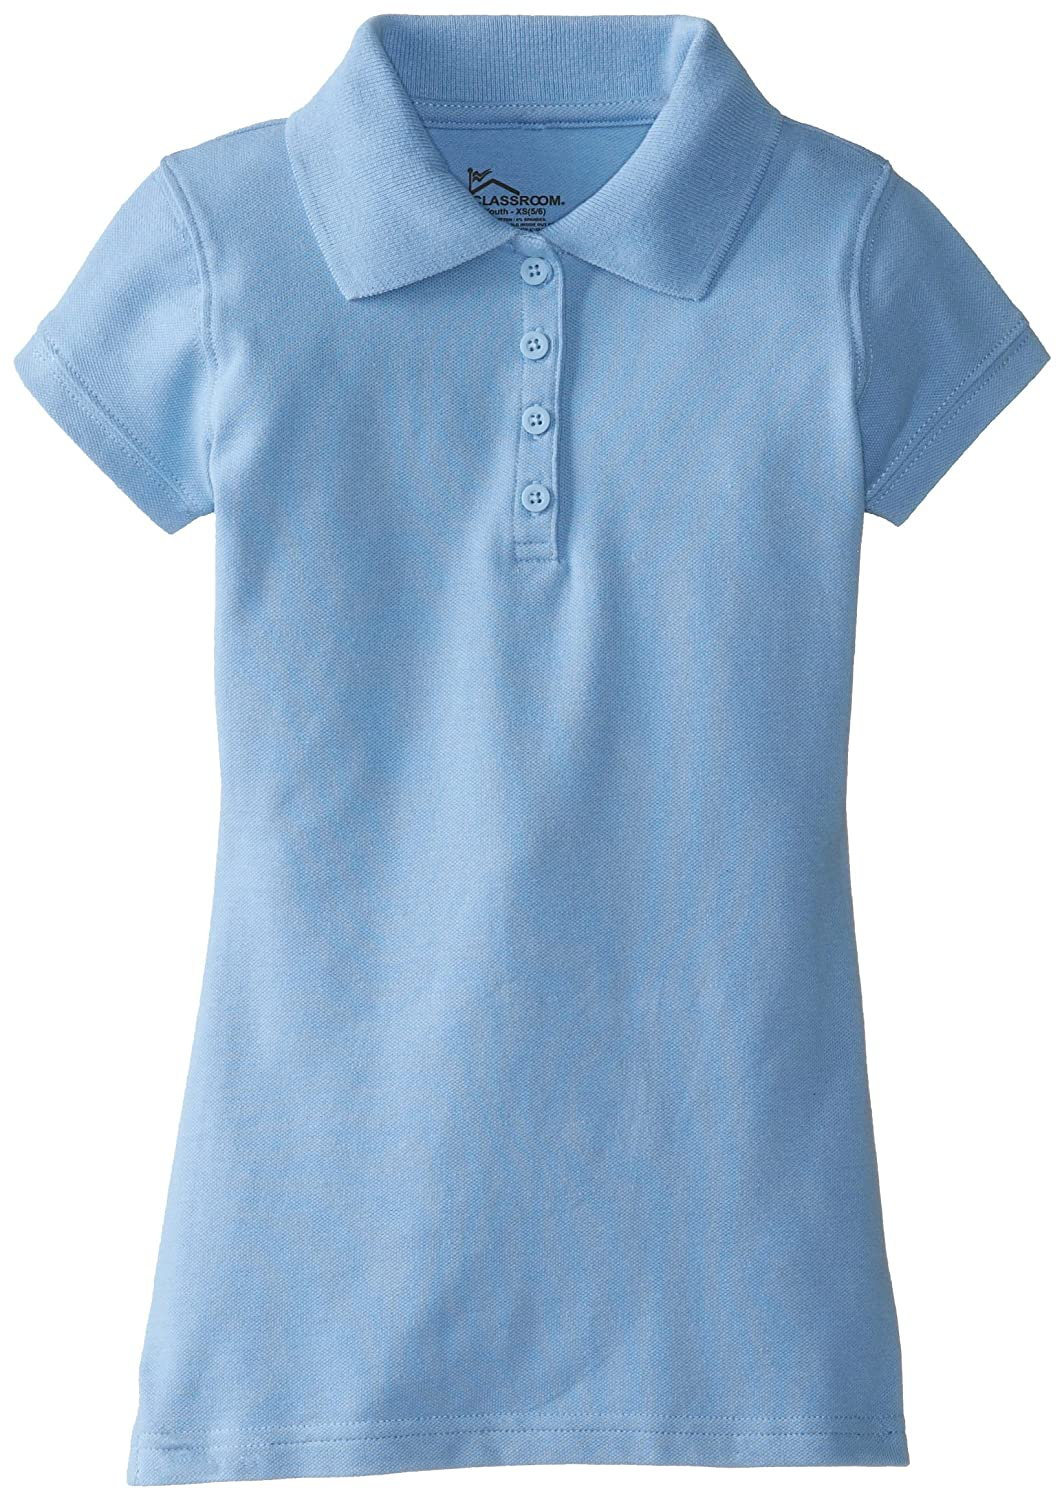 Amazon Classroom Girls Uniform Stretch Pique Polo School